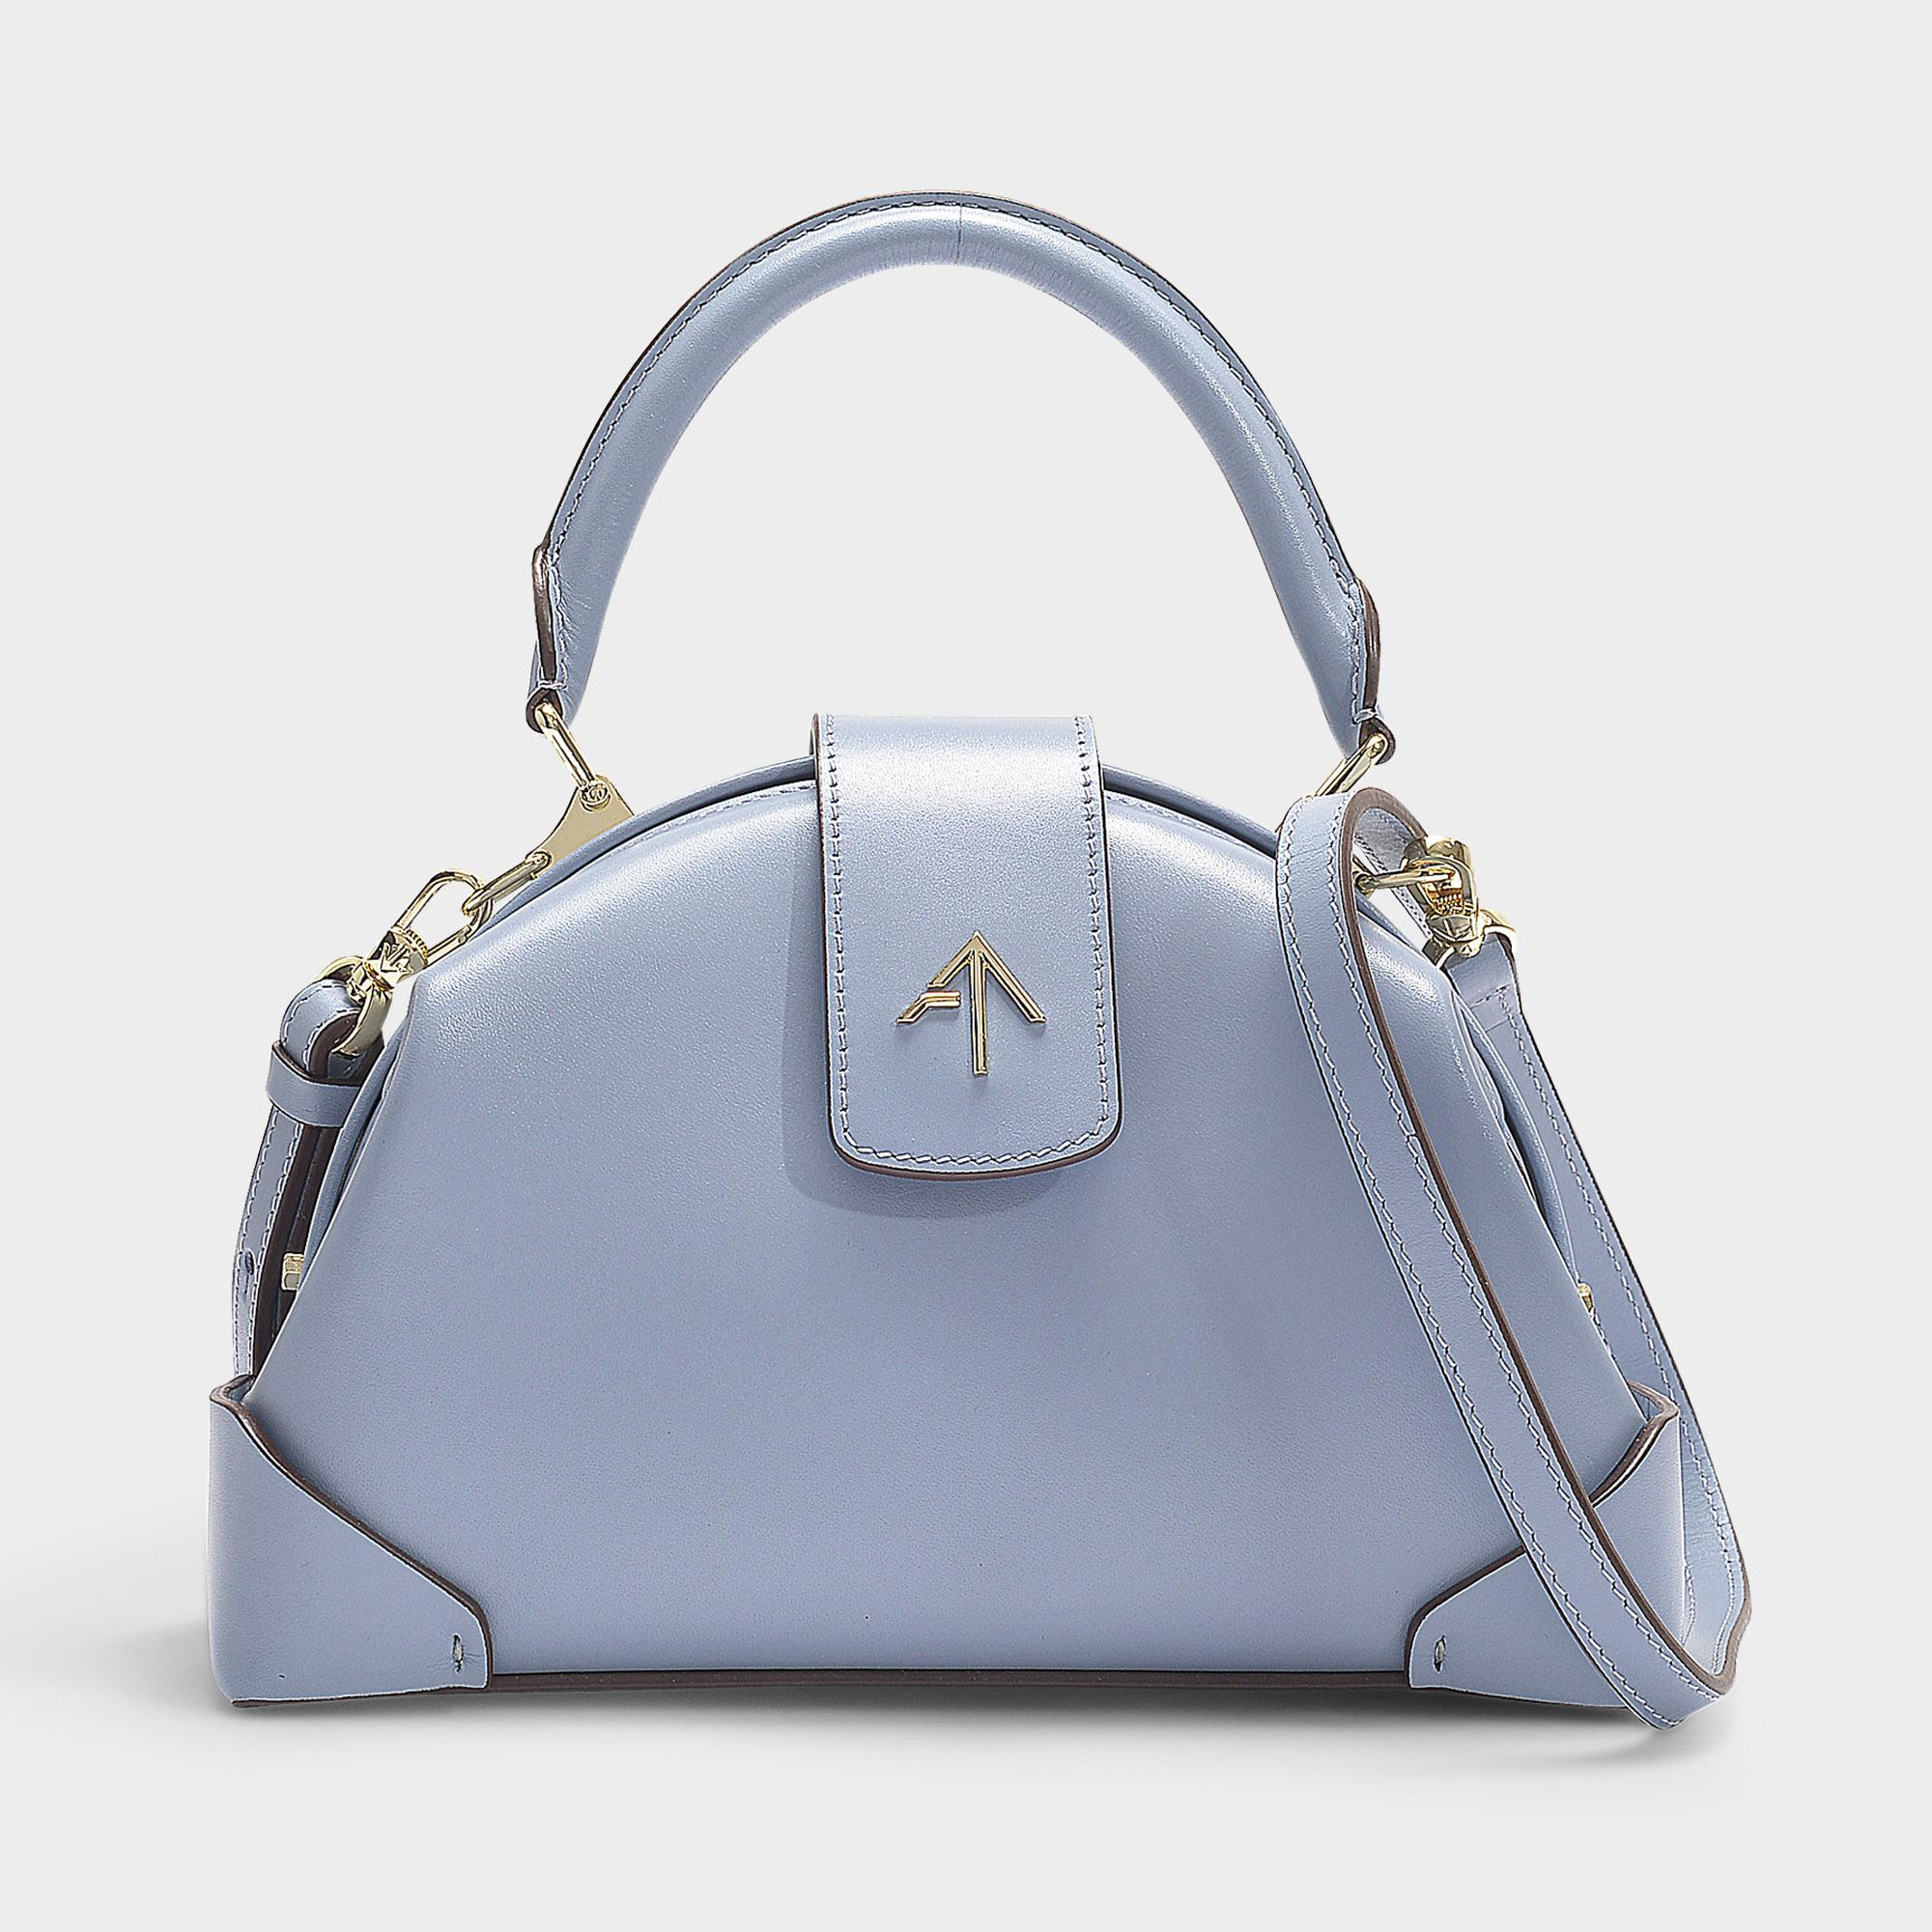 c99e268ae54b manu-atelier-Blue-Demi-Bag-With-Top -Handle-In-Ice-Blue-Vegetable-Tanned-Calf-Leather.jpeg